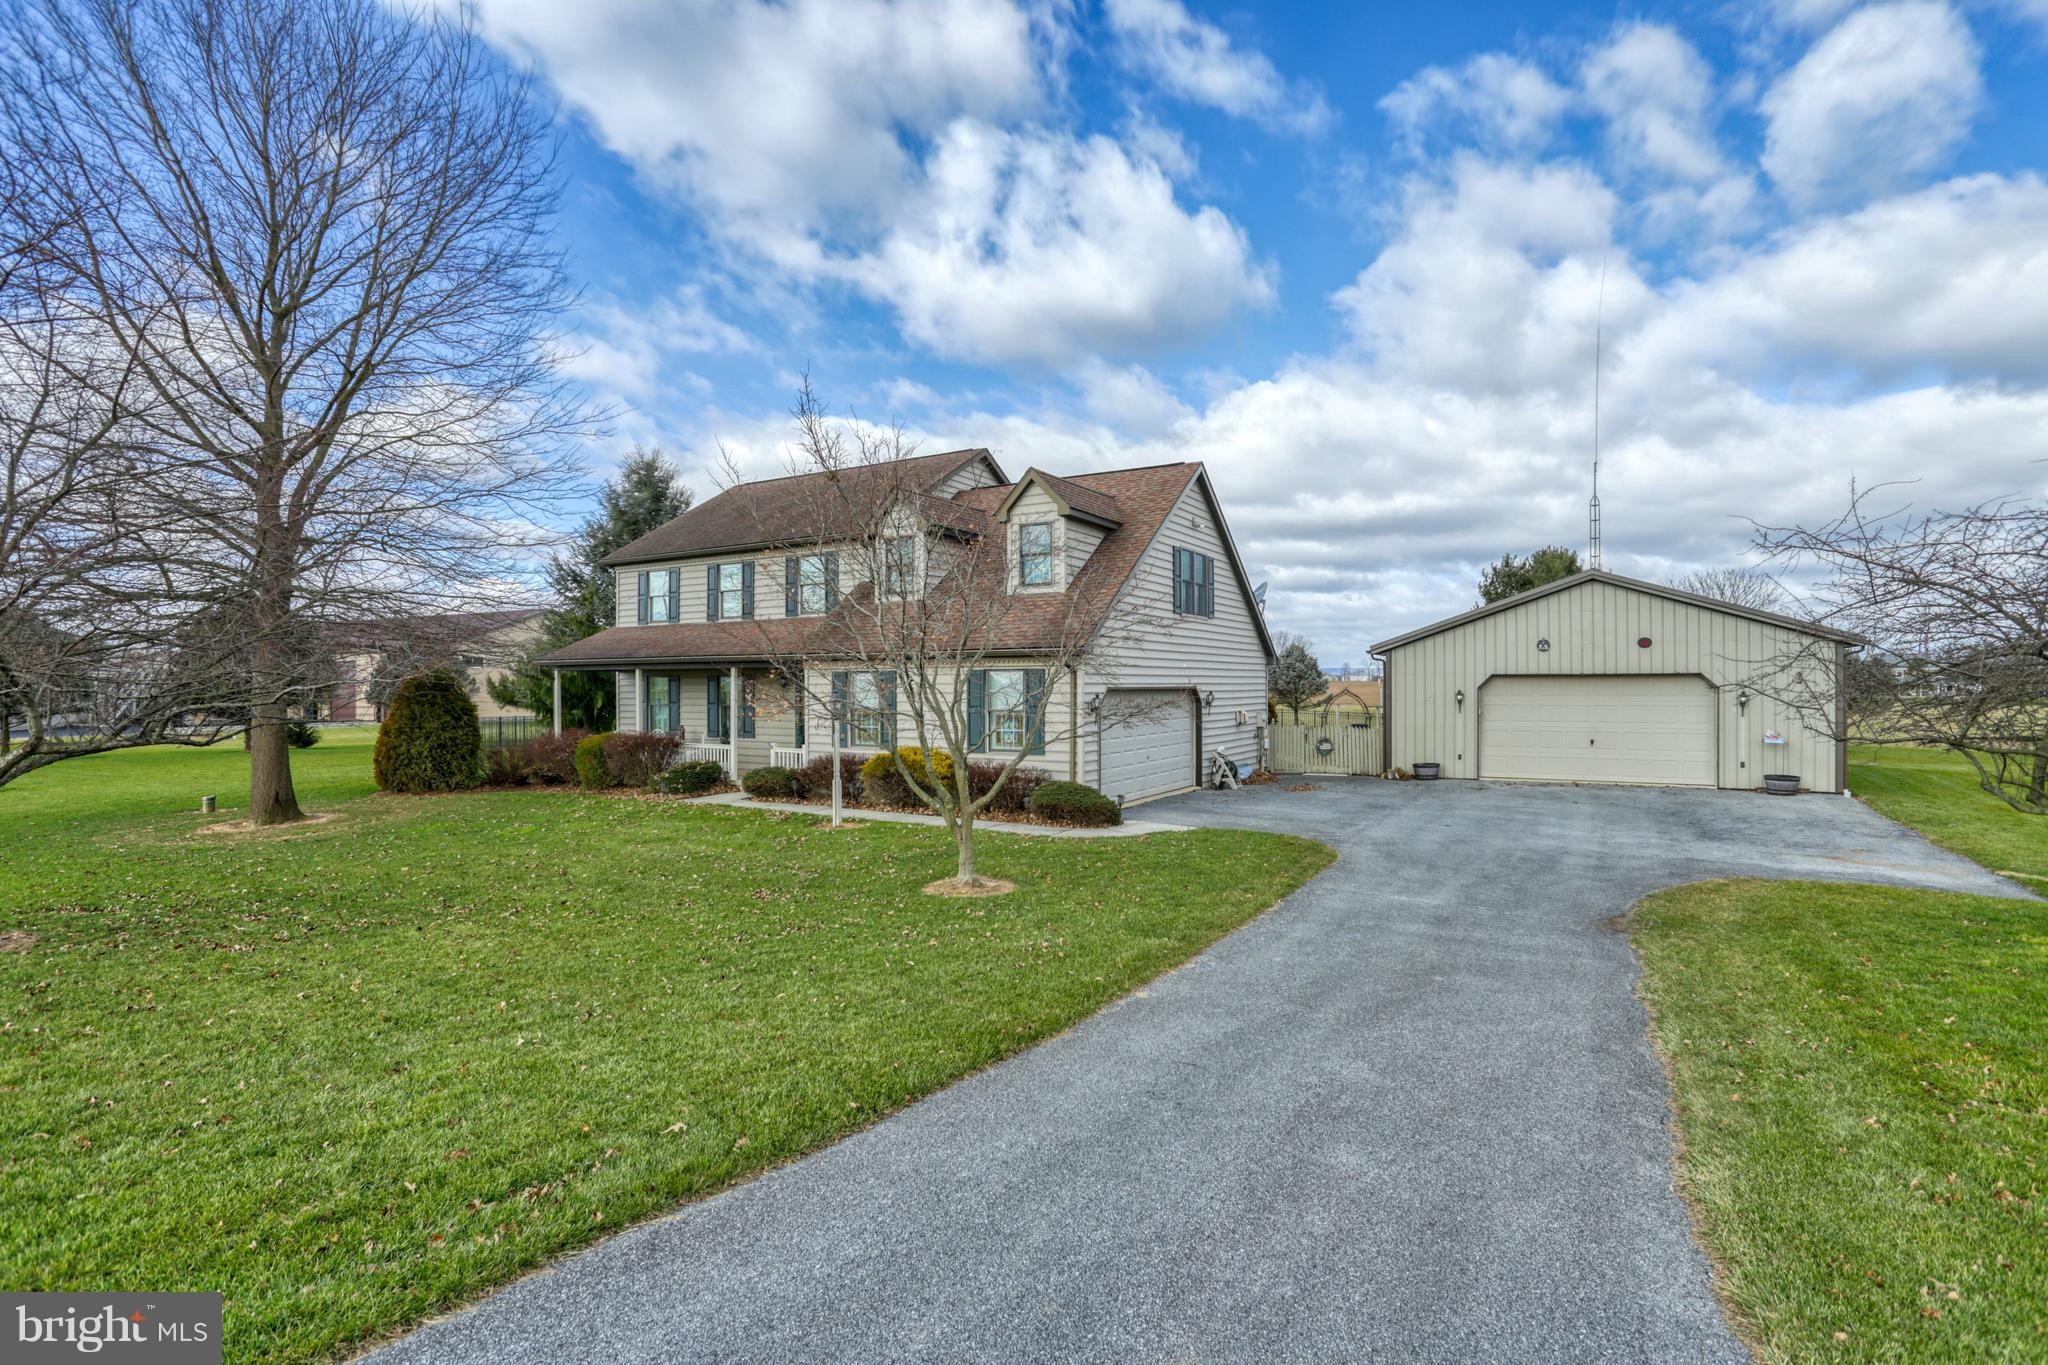 11 ELCO DRIVE, MYERSTOWN, PA 17067